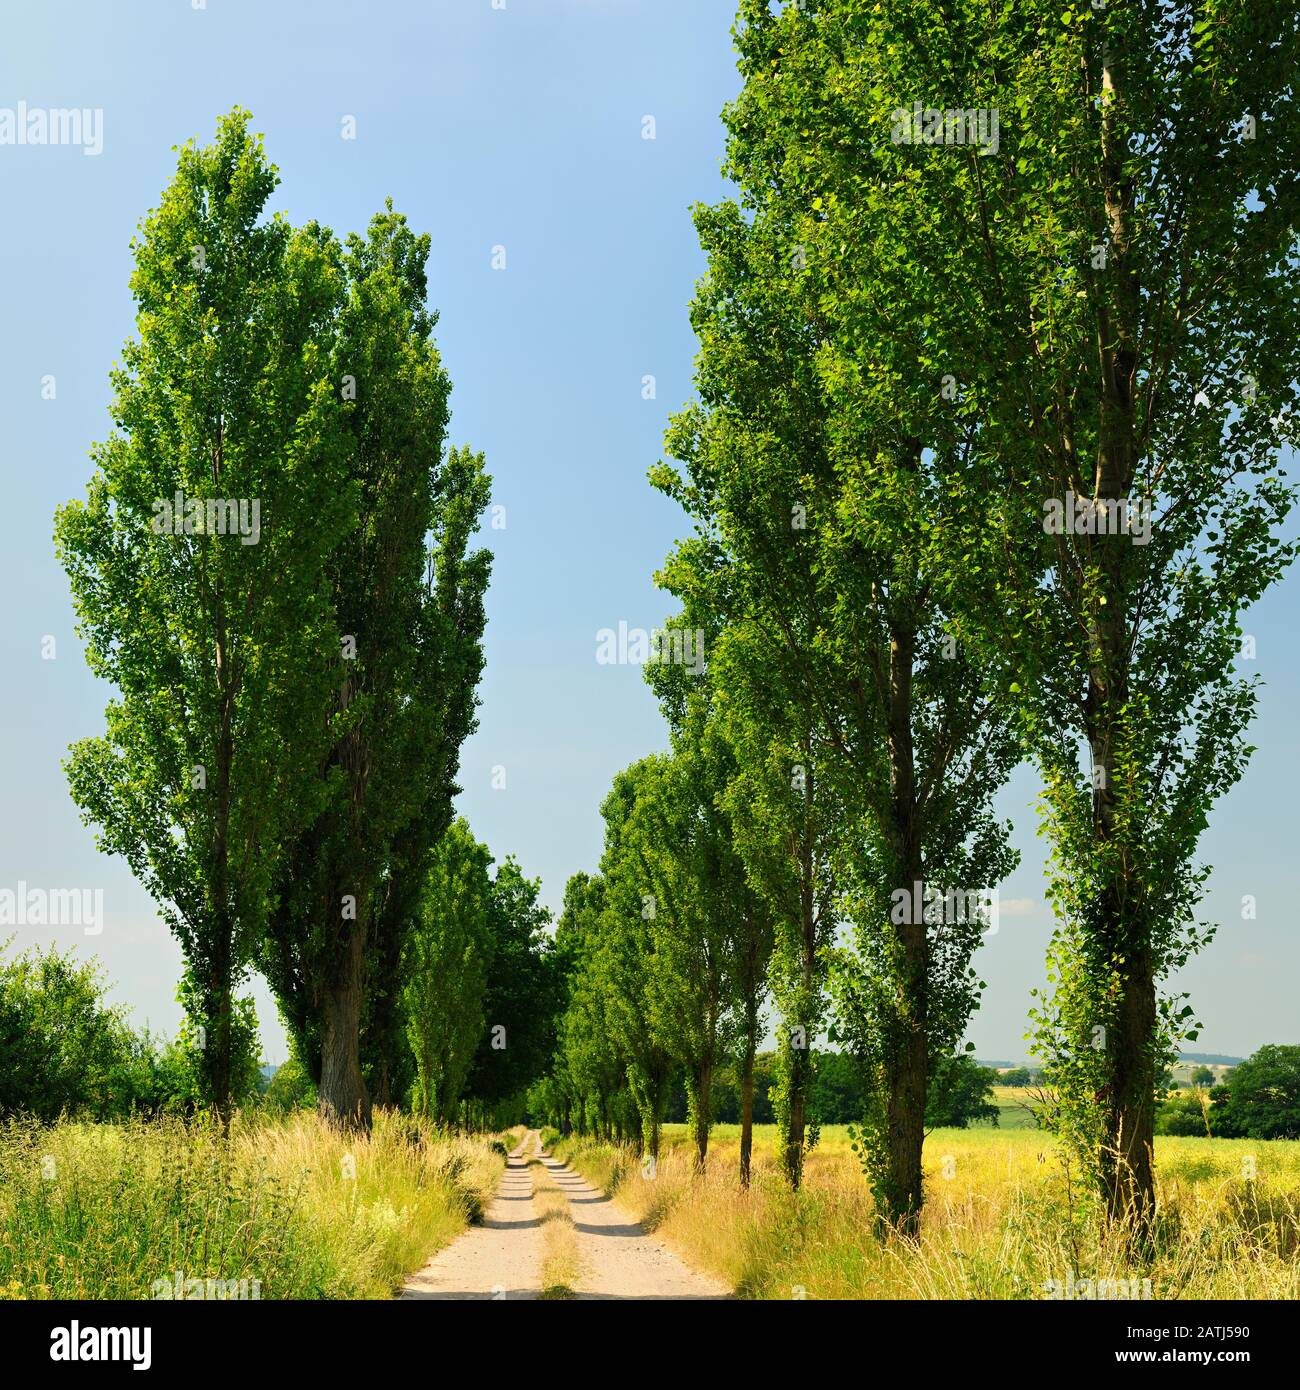 Field path through poplar avenue in summer, Mecklenburg-Western Pomerania, Germany Stock Photo